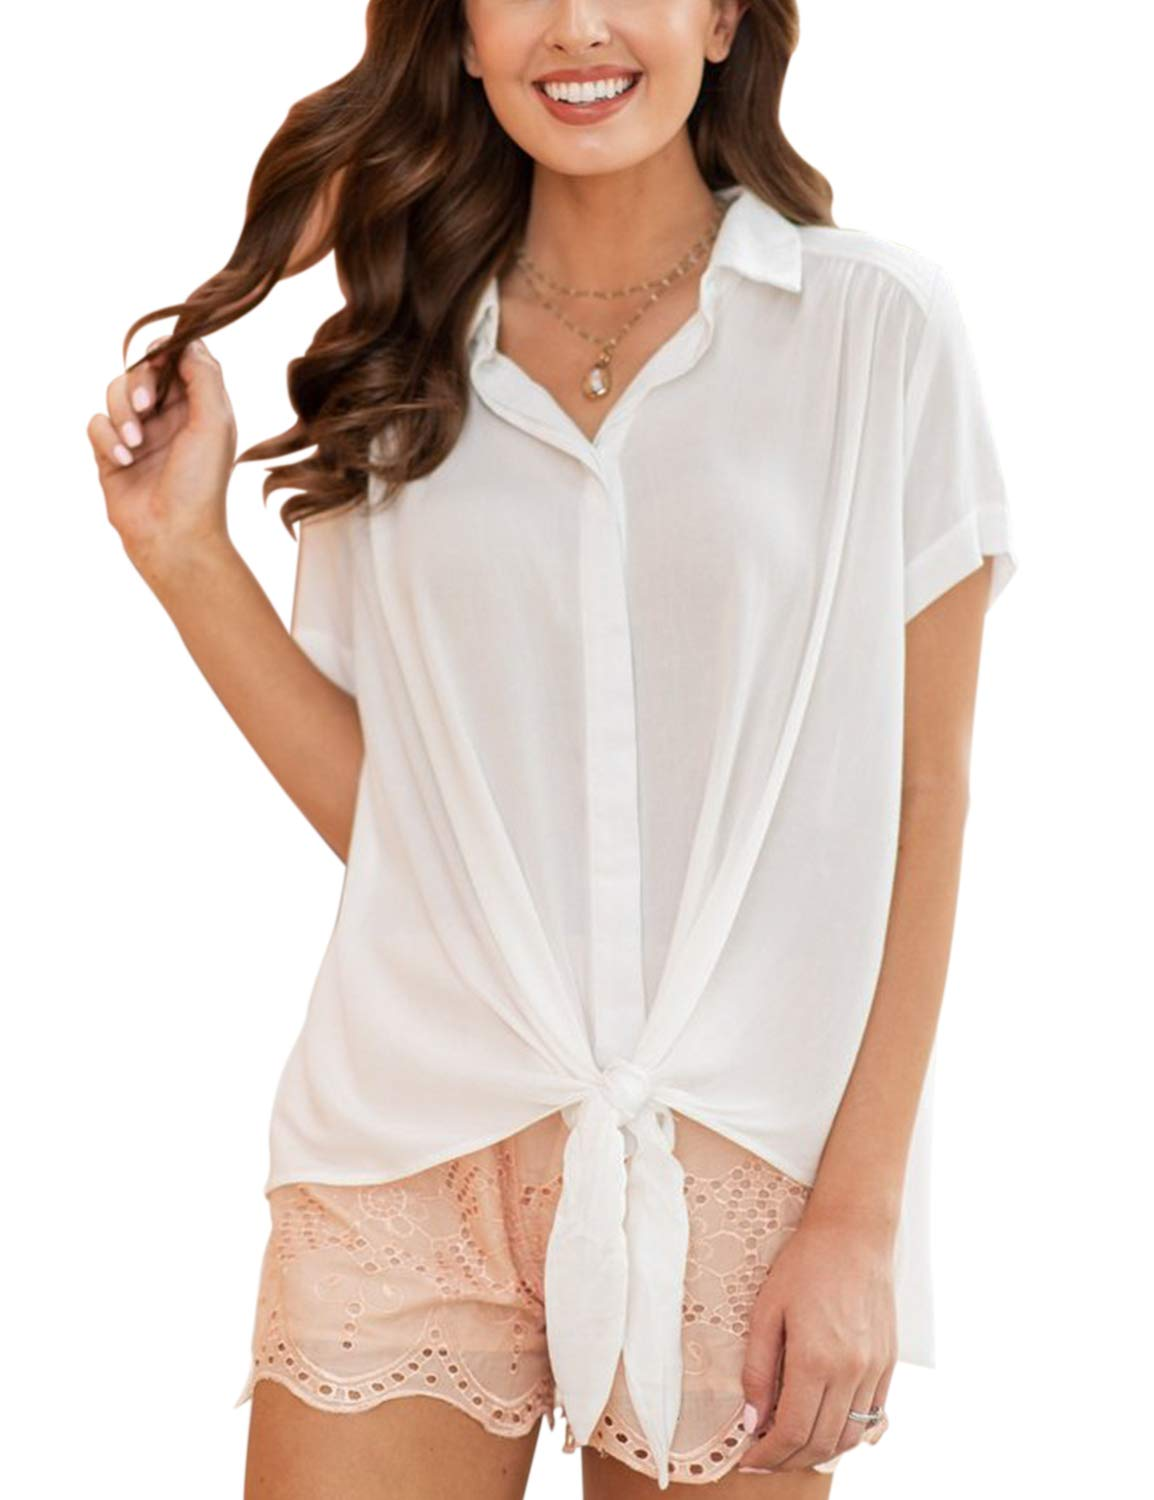 Blooming Jelly Women's Collared Short Sleeve Tie Knot Button Top Shirt Blouse White